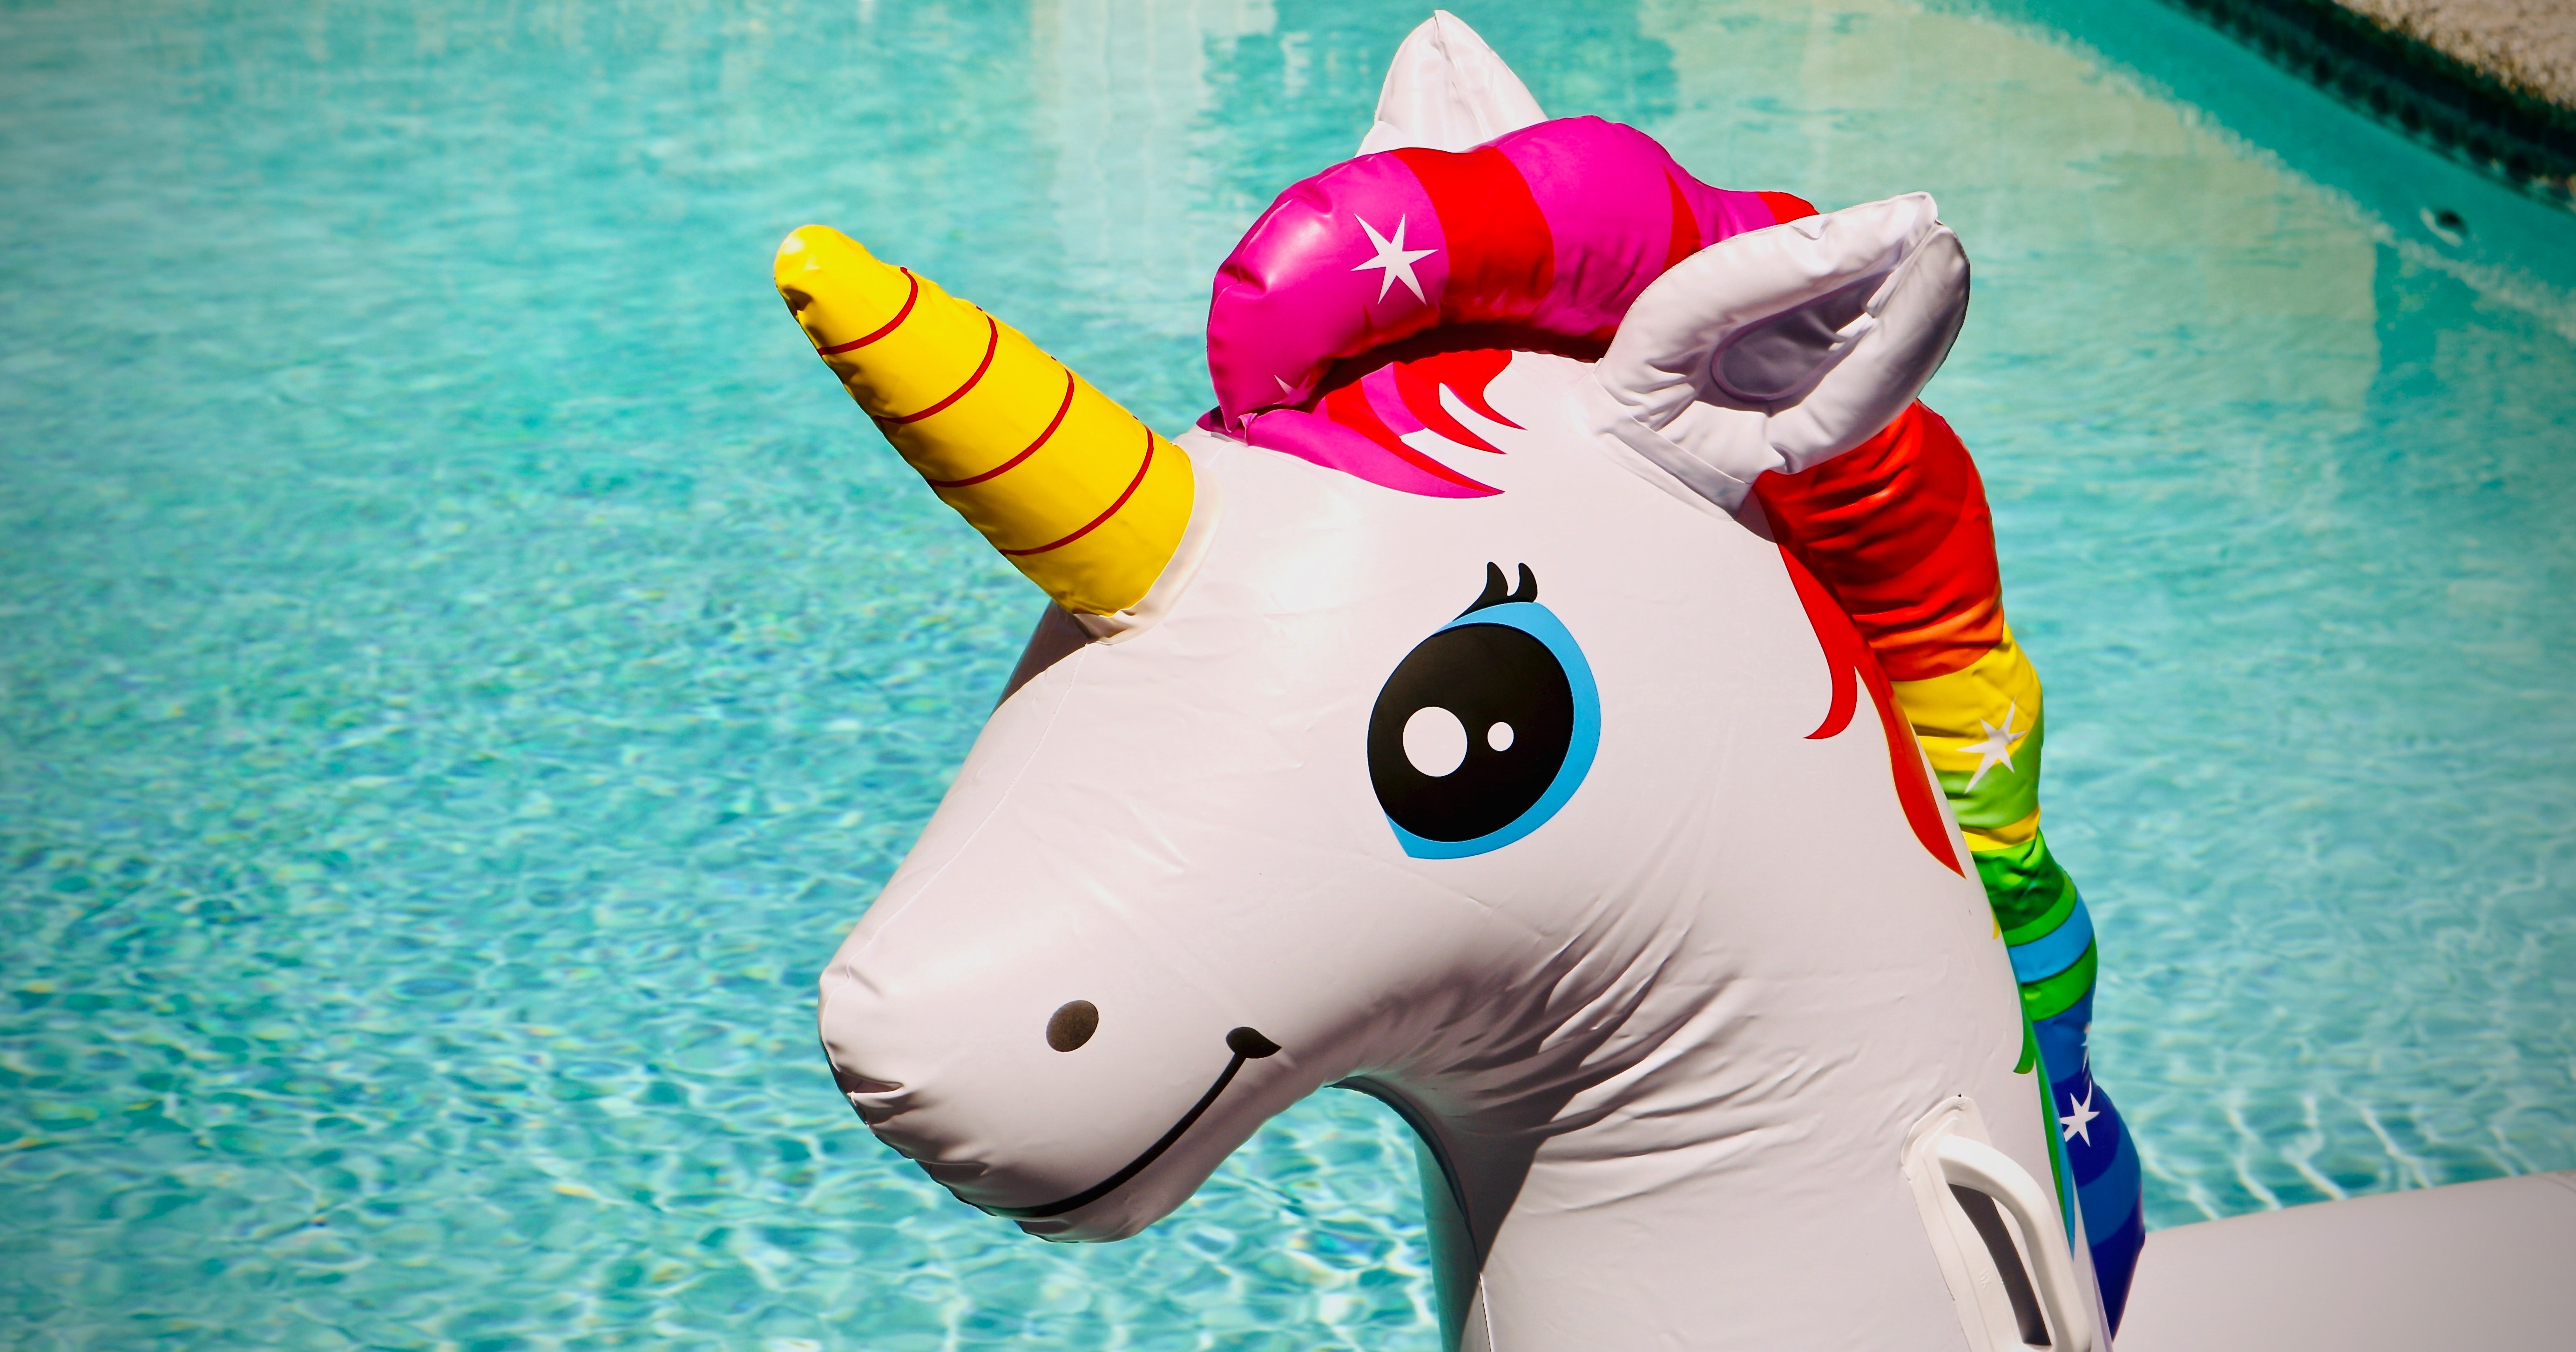 inflatable unicorn in a pool